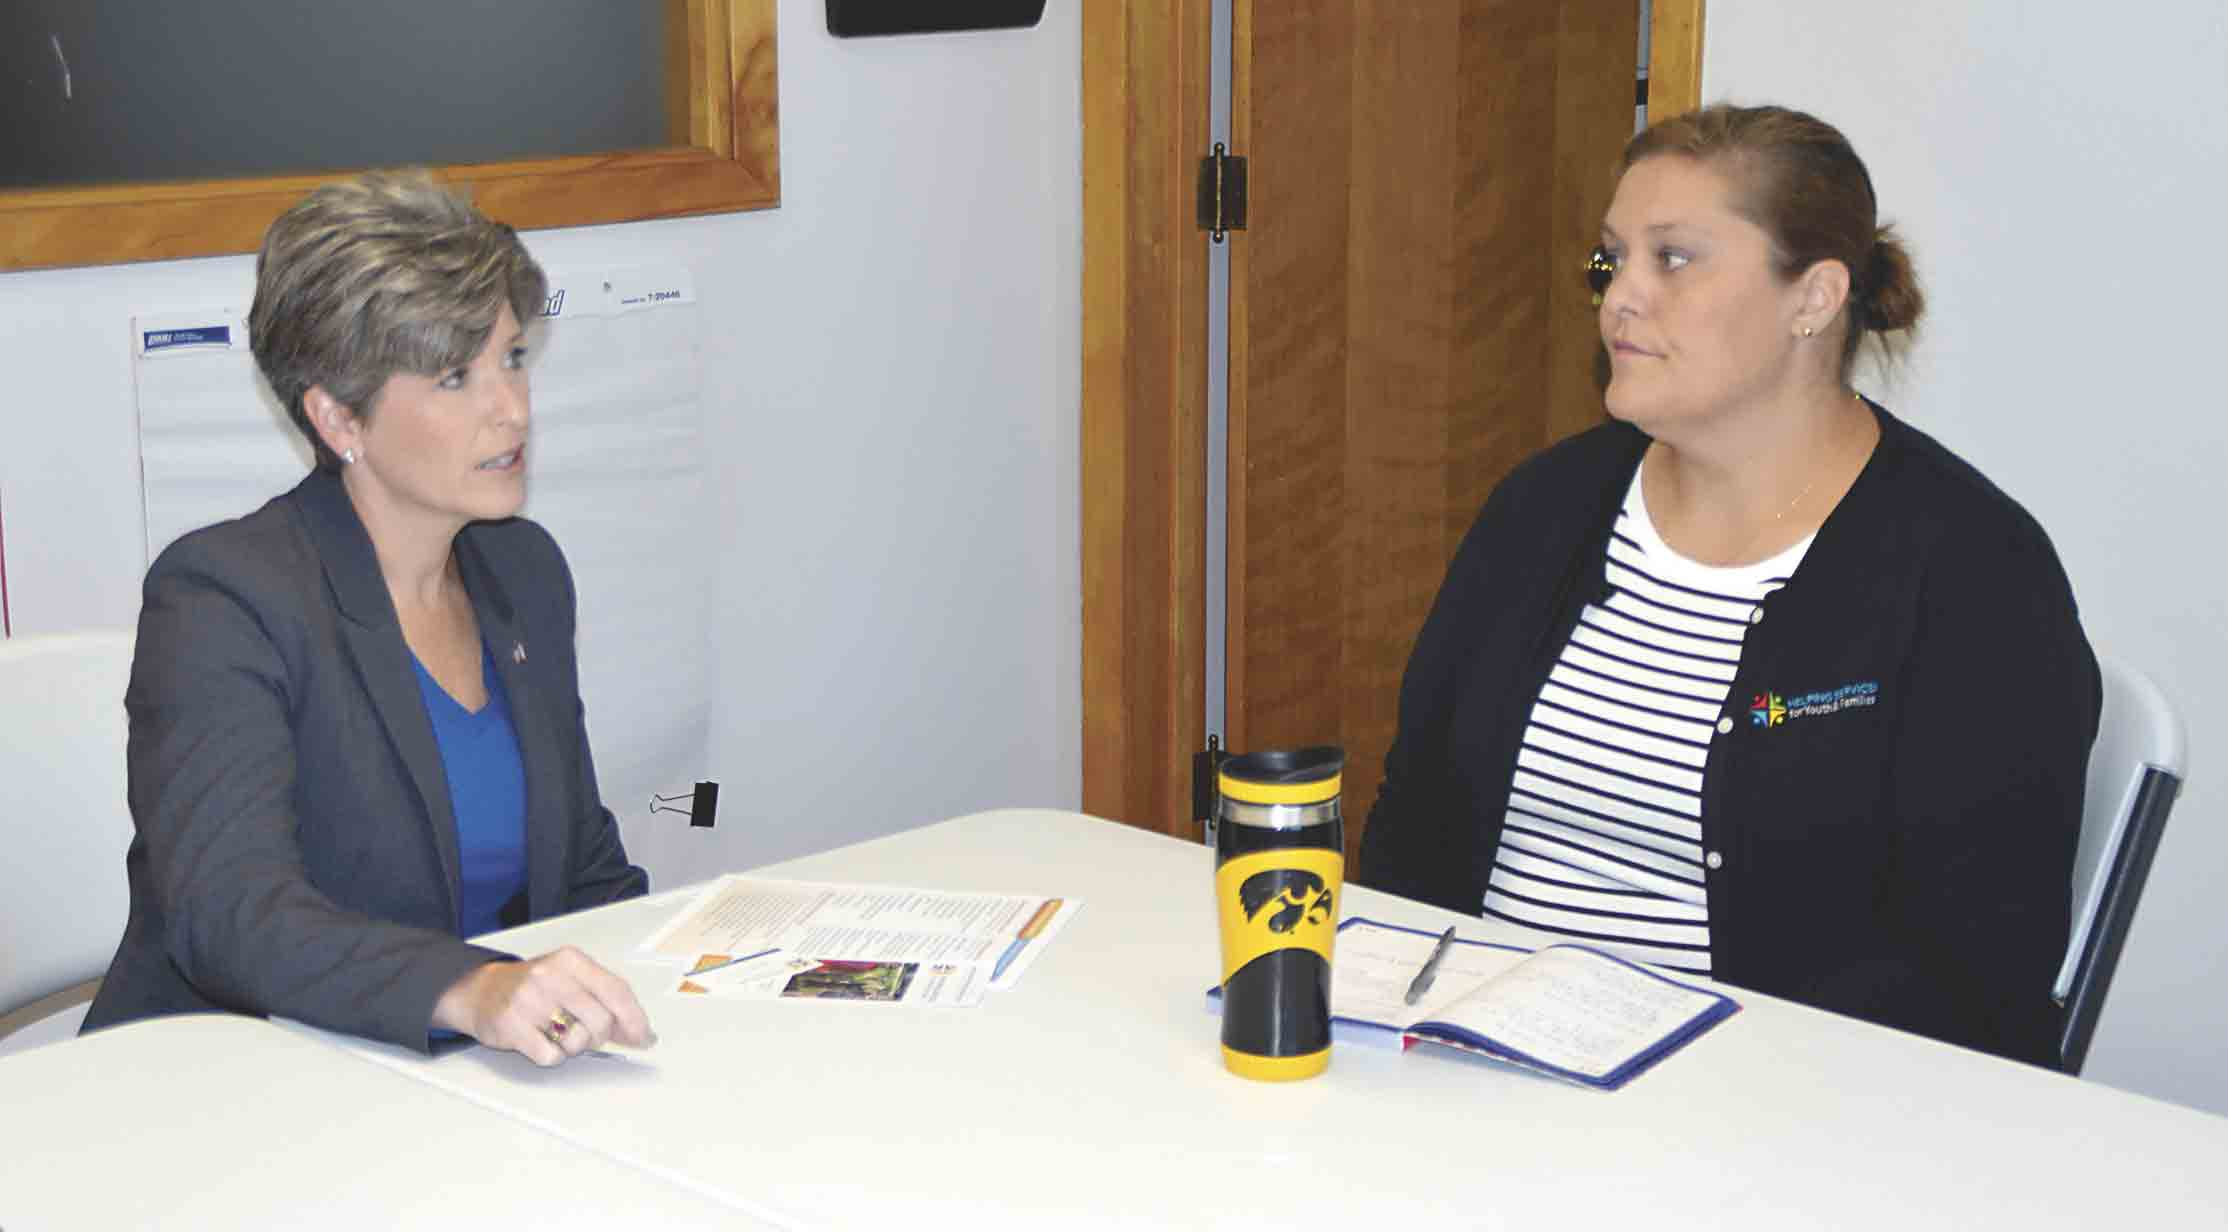 Stacie Schroeder (right), TigerHawk Connections Learning Center program director, speaks with U.S. Senator Joni Ernst about the after school program that is funded by a federal grant, and the different ways the program supports children learning after school.  Chris DeBack photos...